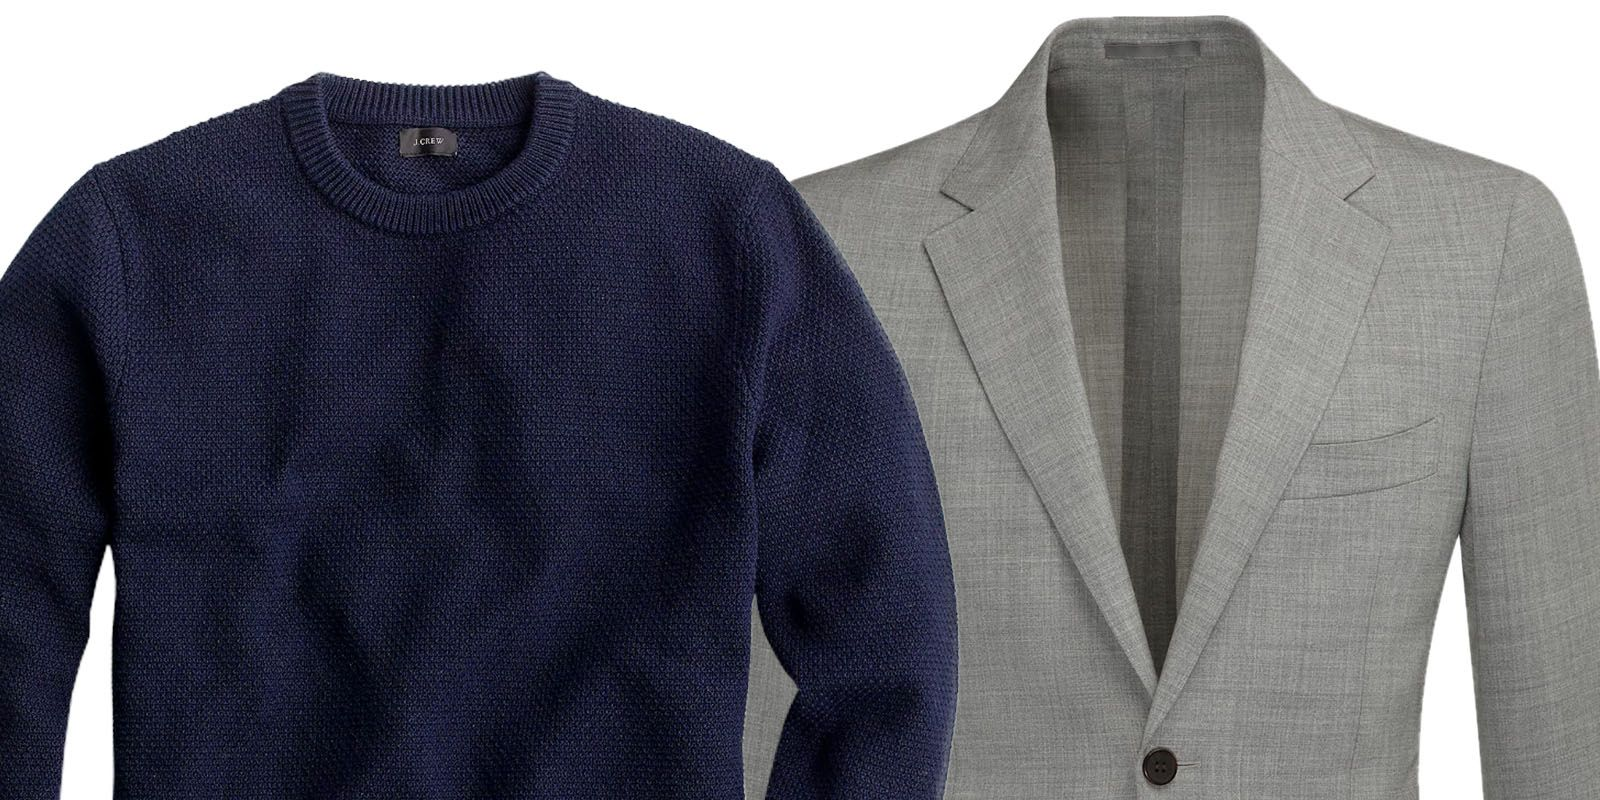 10e39e2317c What to Wear to An Interview for Men - Job Interview Men s Outfits